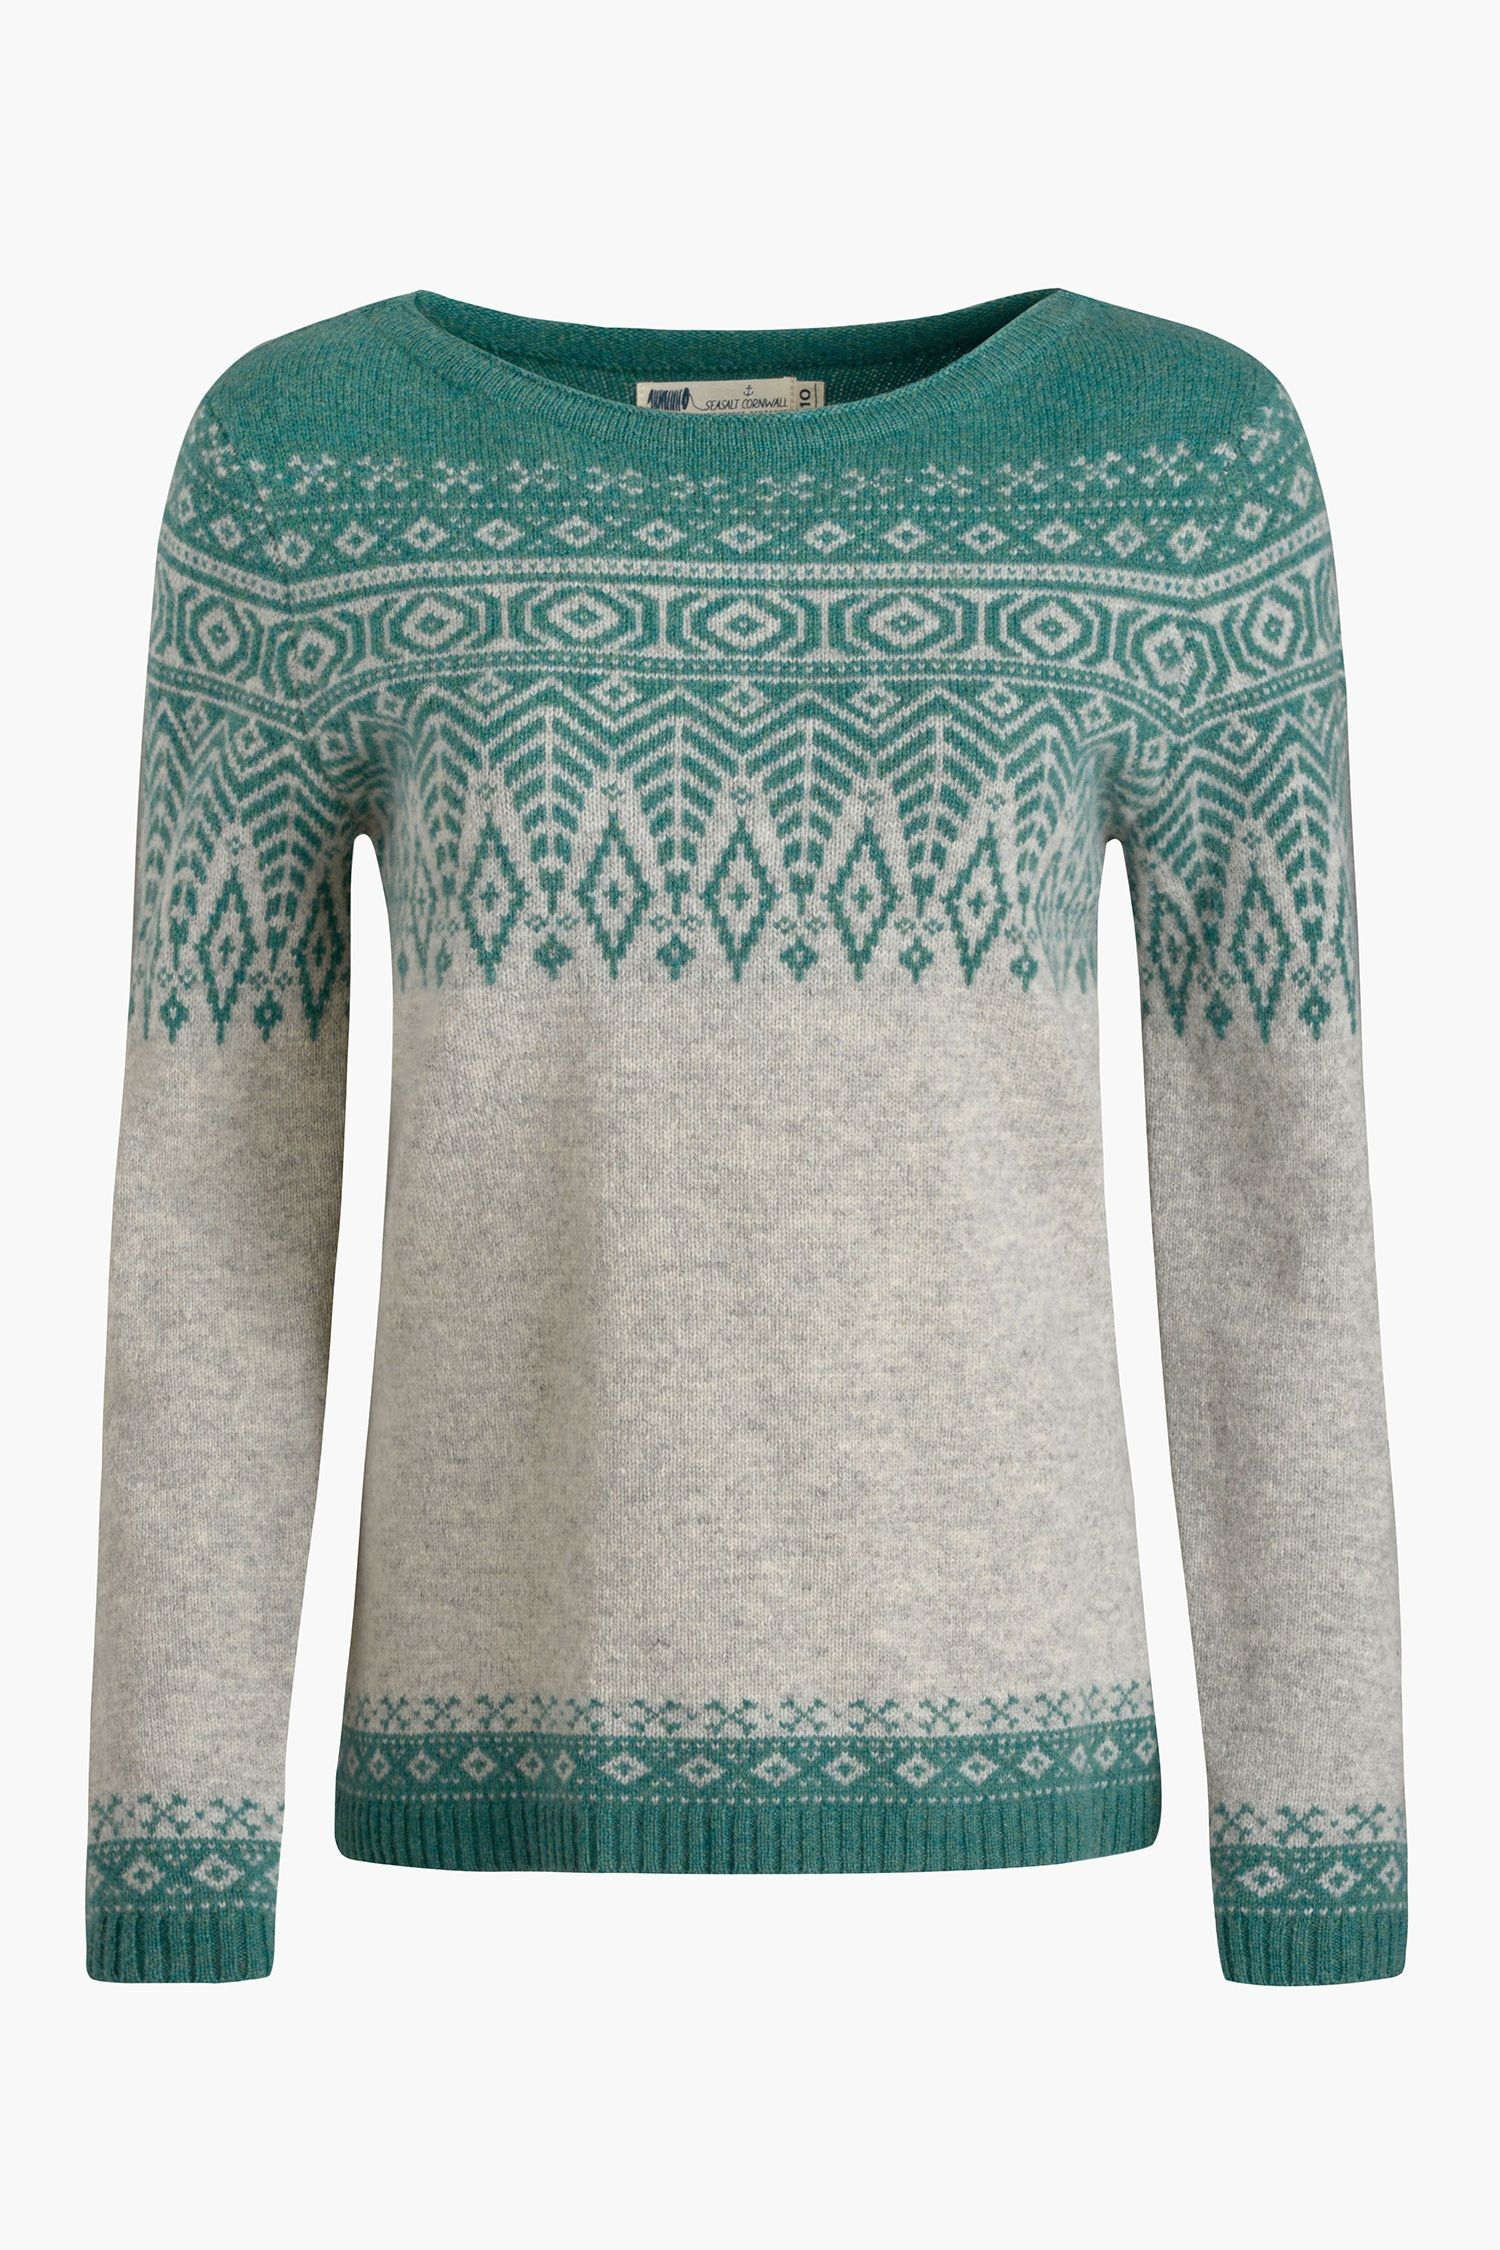 Seasalt S Take On The Traditional Fair Isle Knit In The